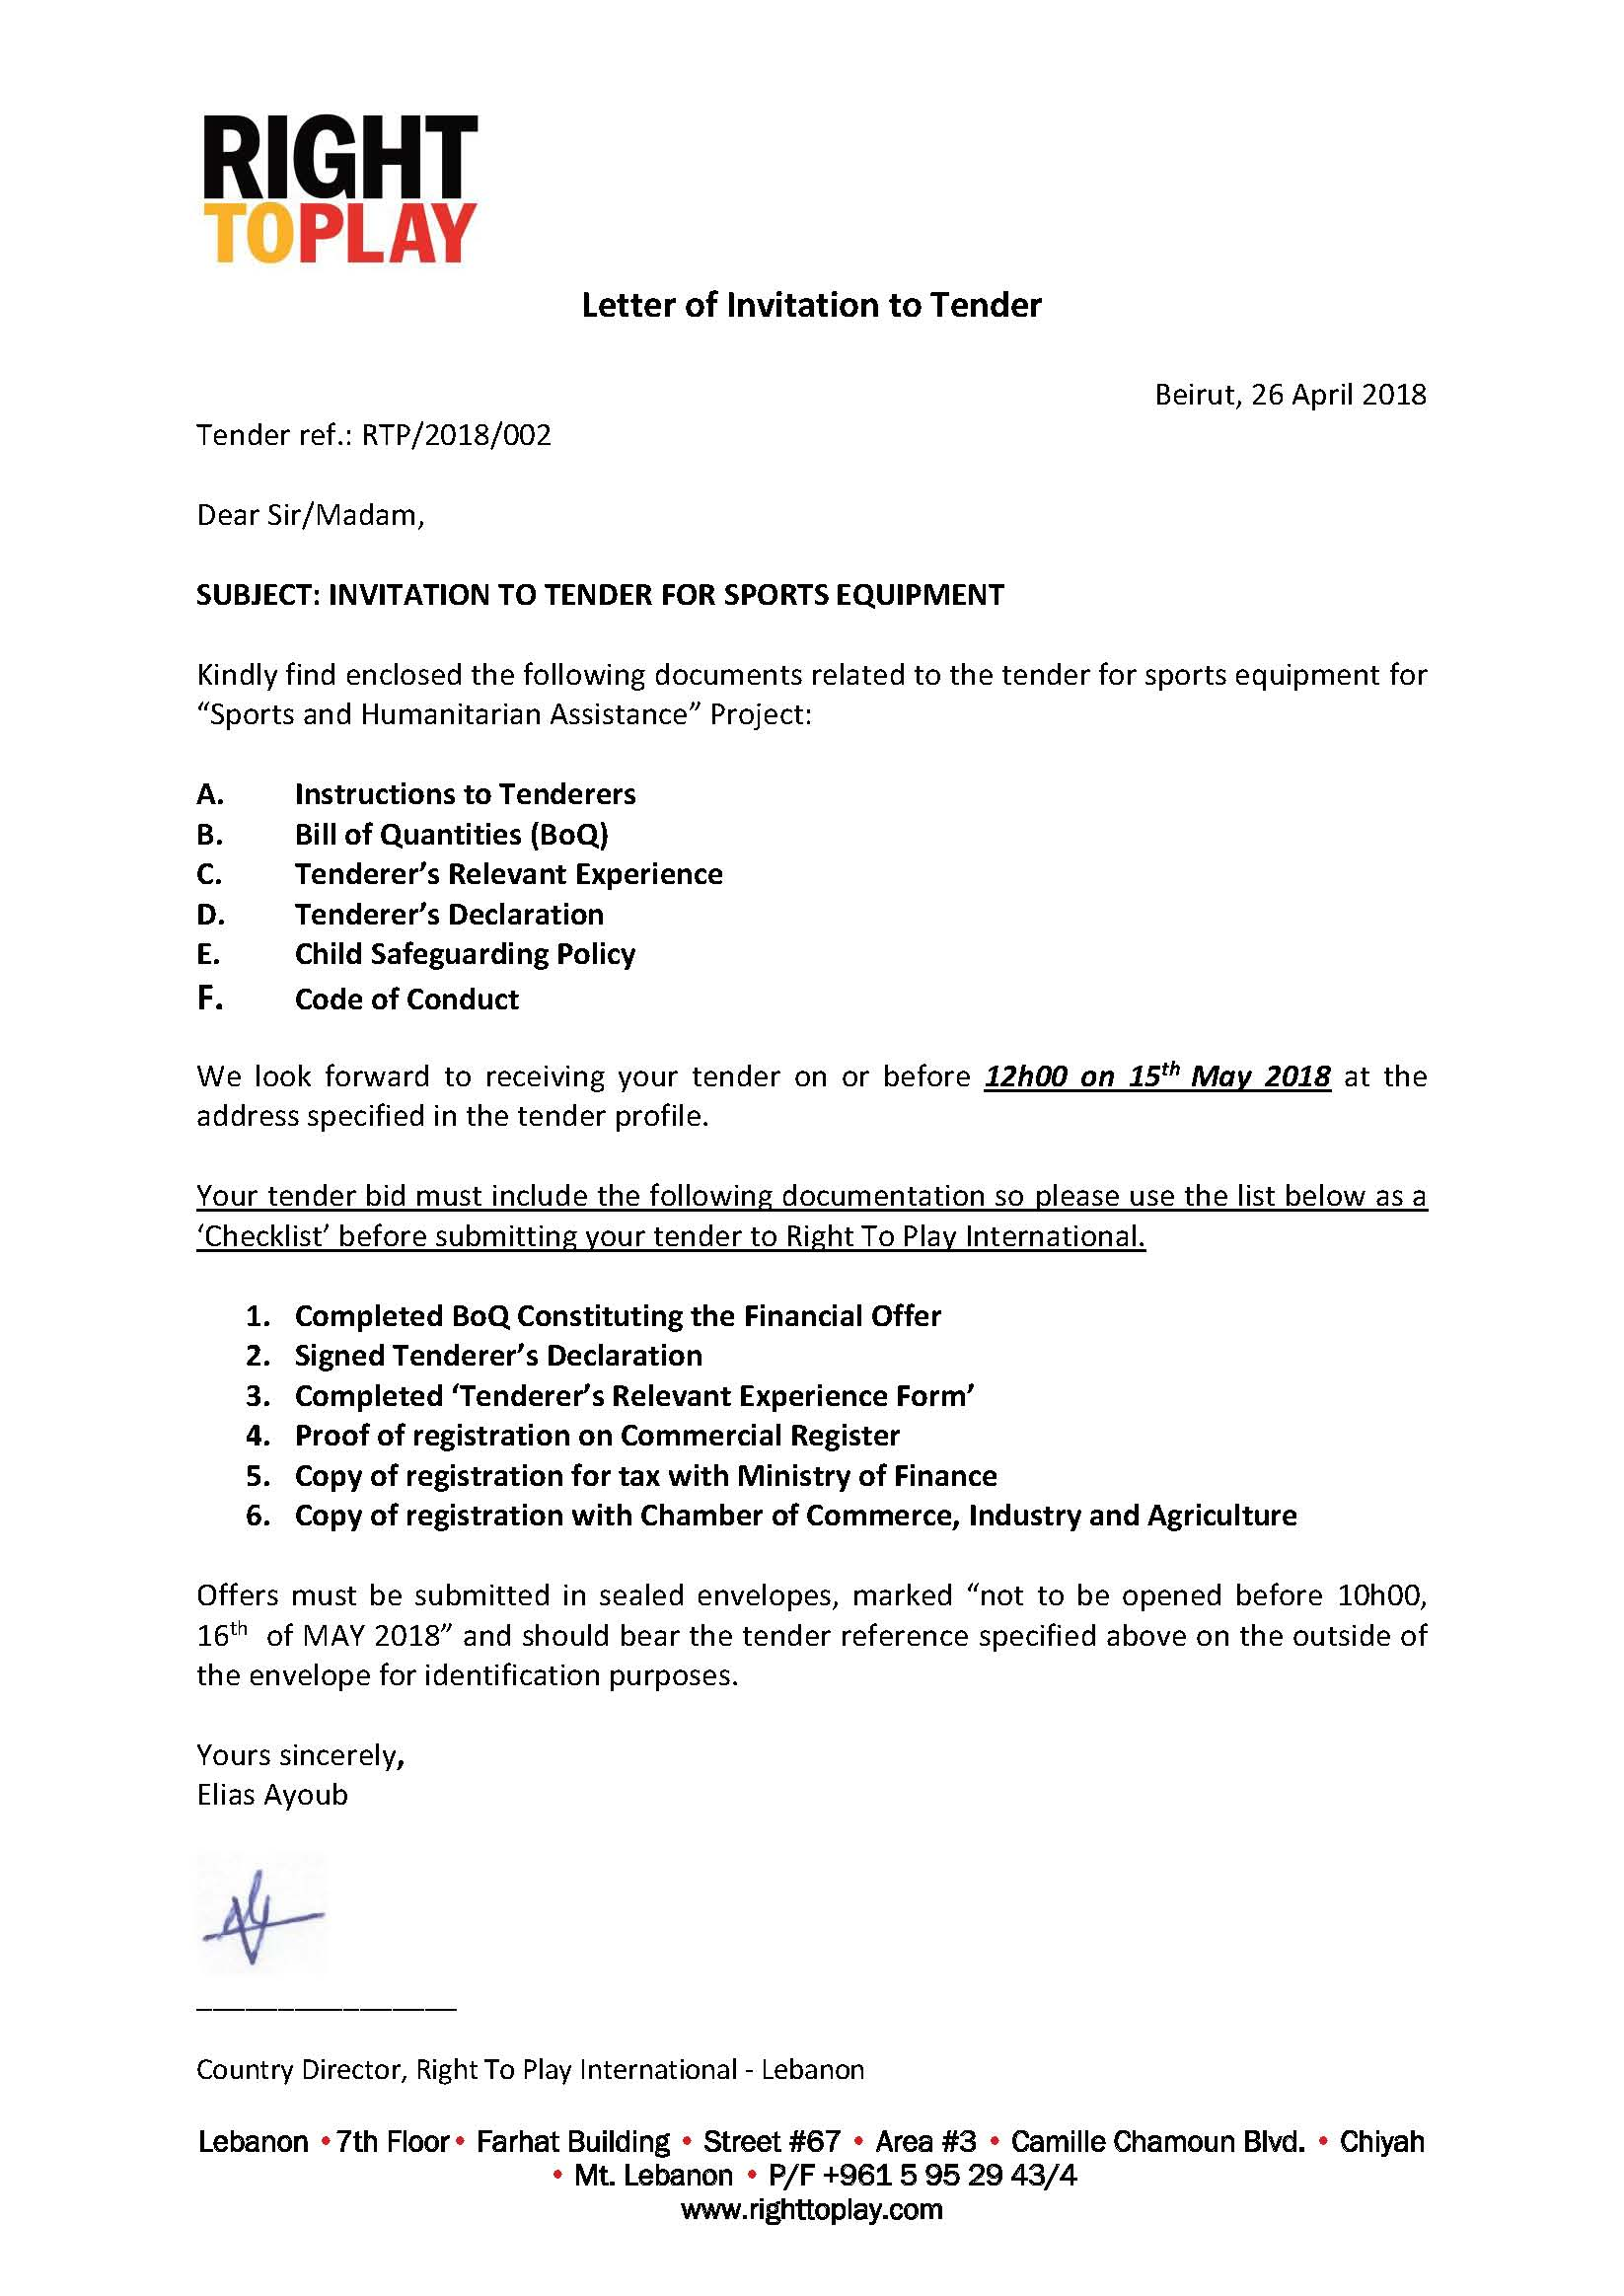 Right To Play Tender Ref # RTP/2018/002: tender For Sports